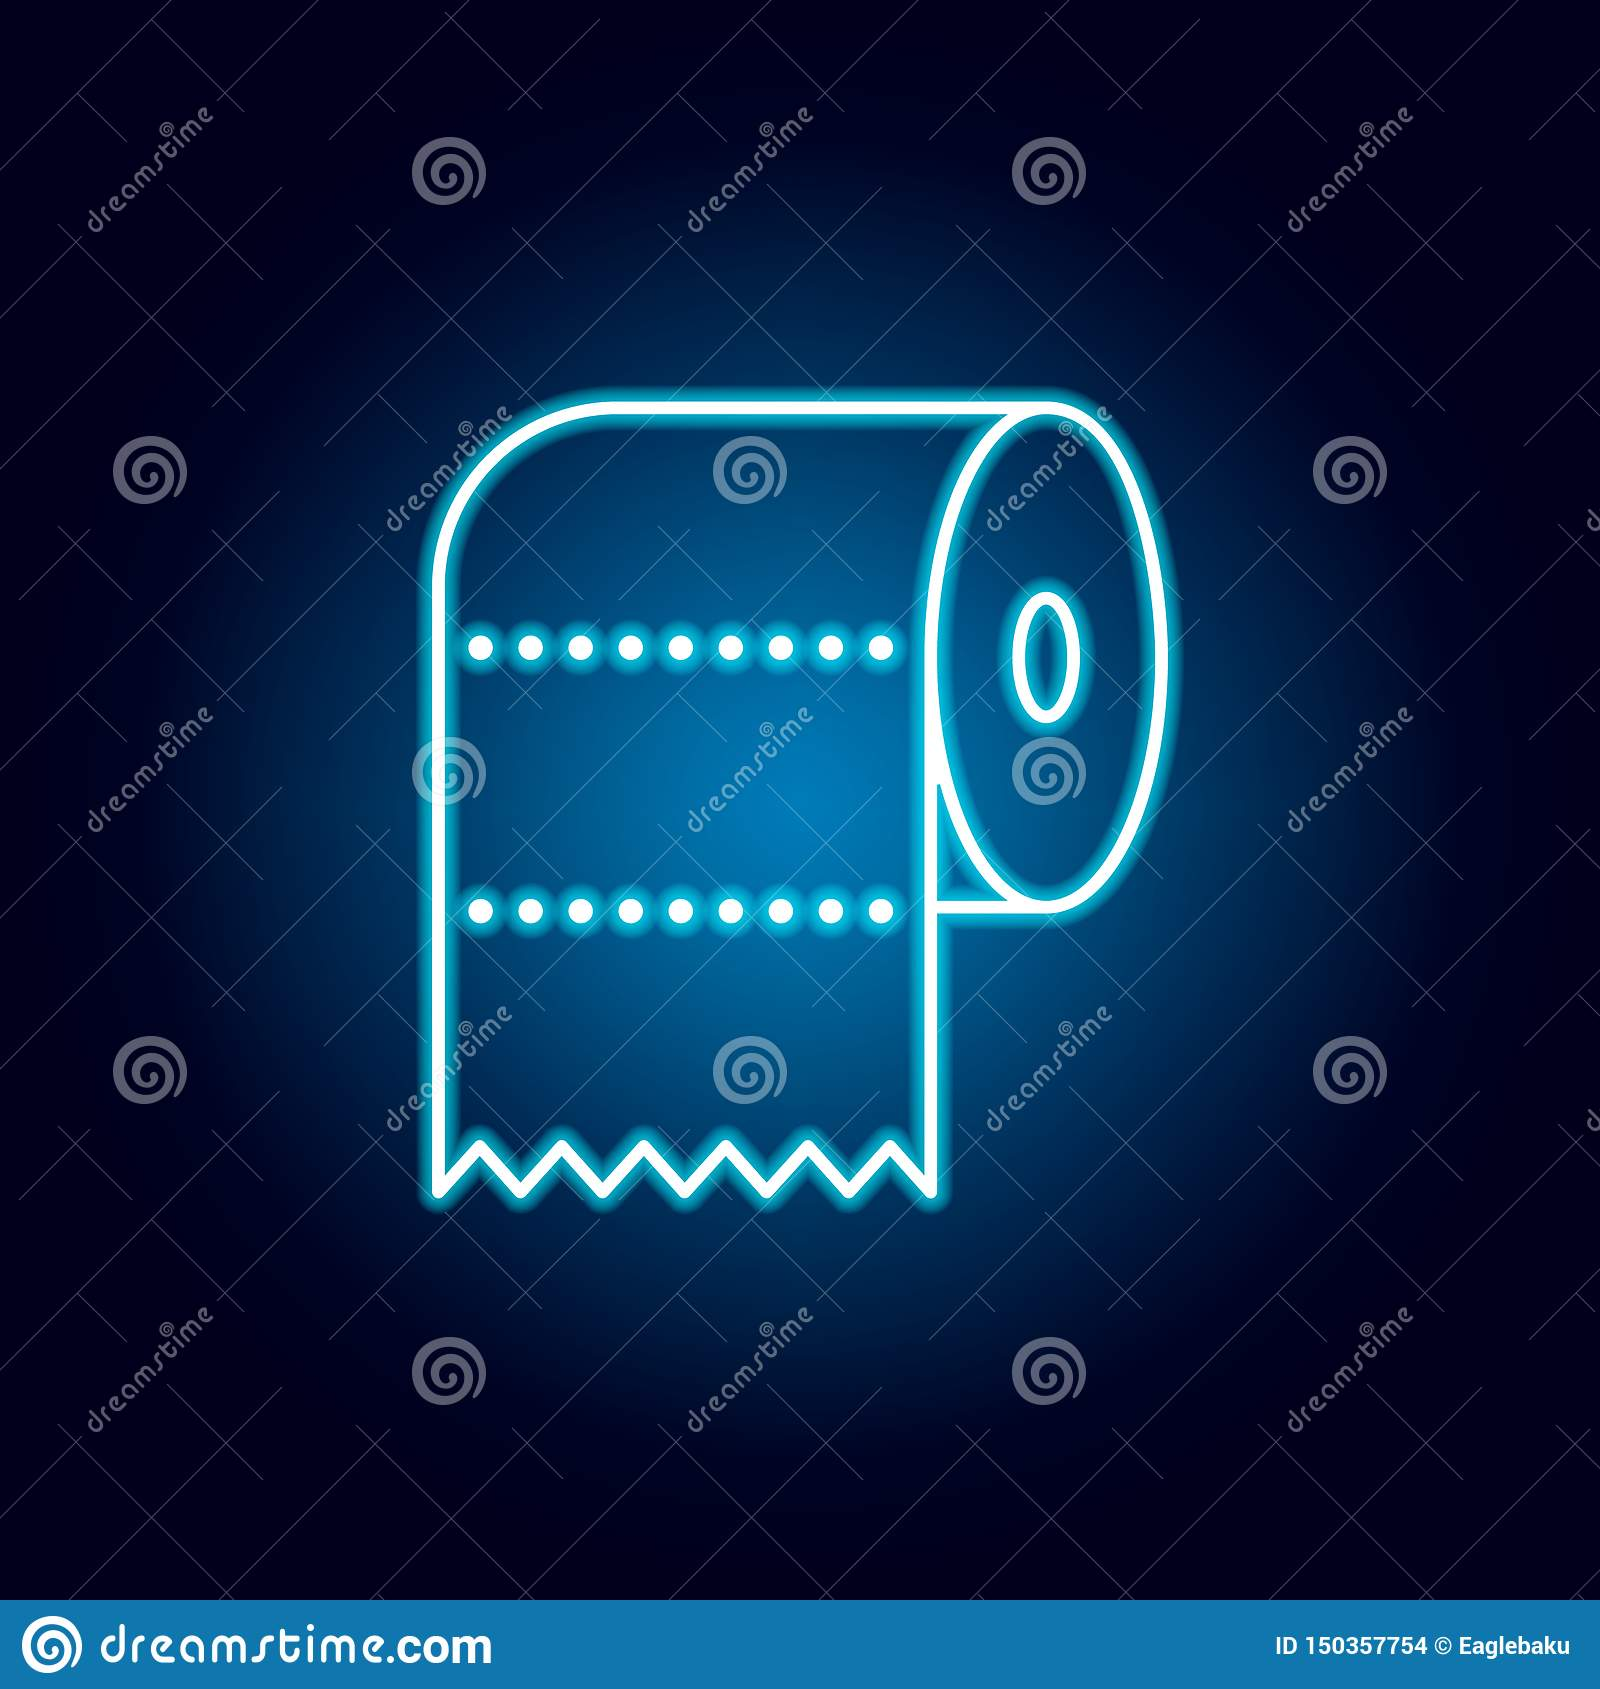 wc, paper, toilet, towel outline icon in neon style. signs and symbols can be used for web, logo, mobile app, UI, UX